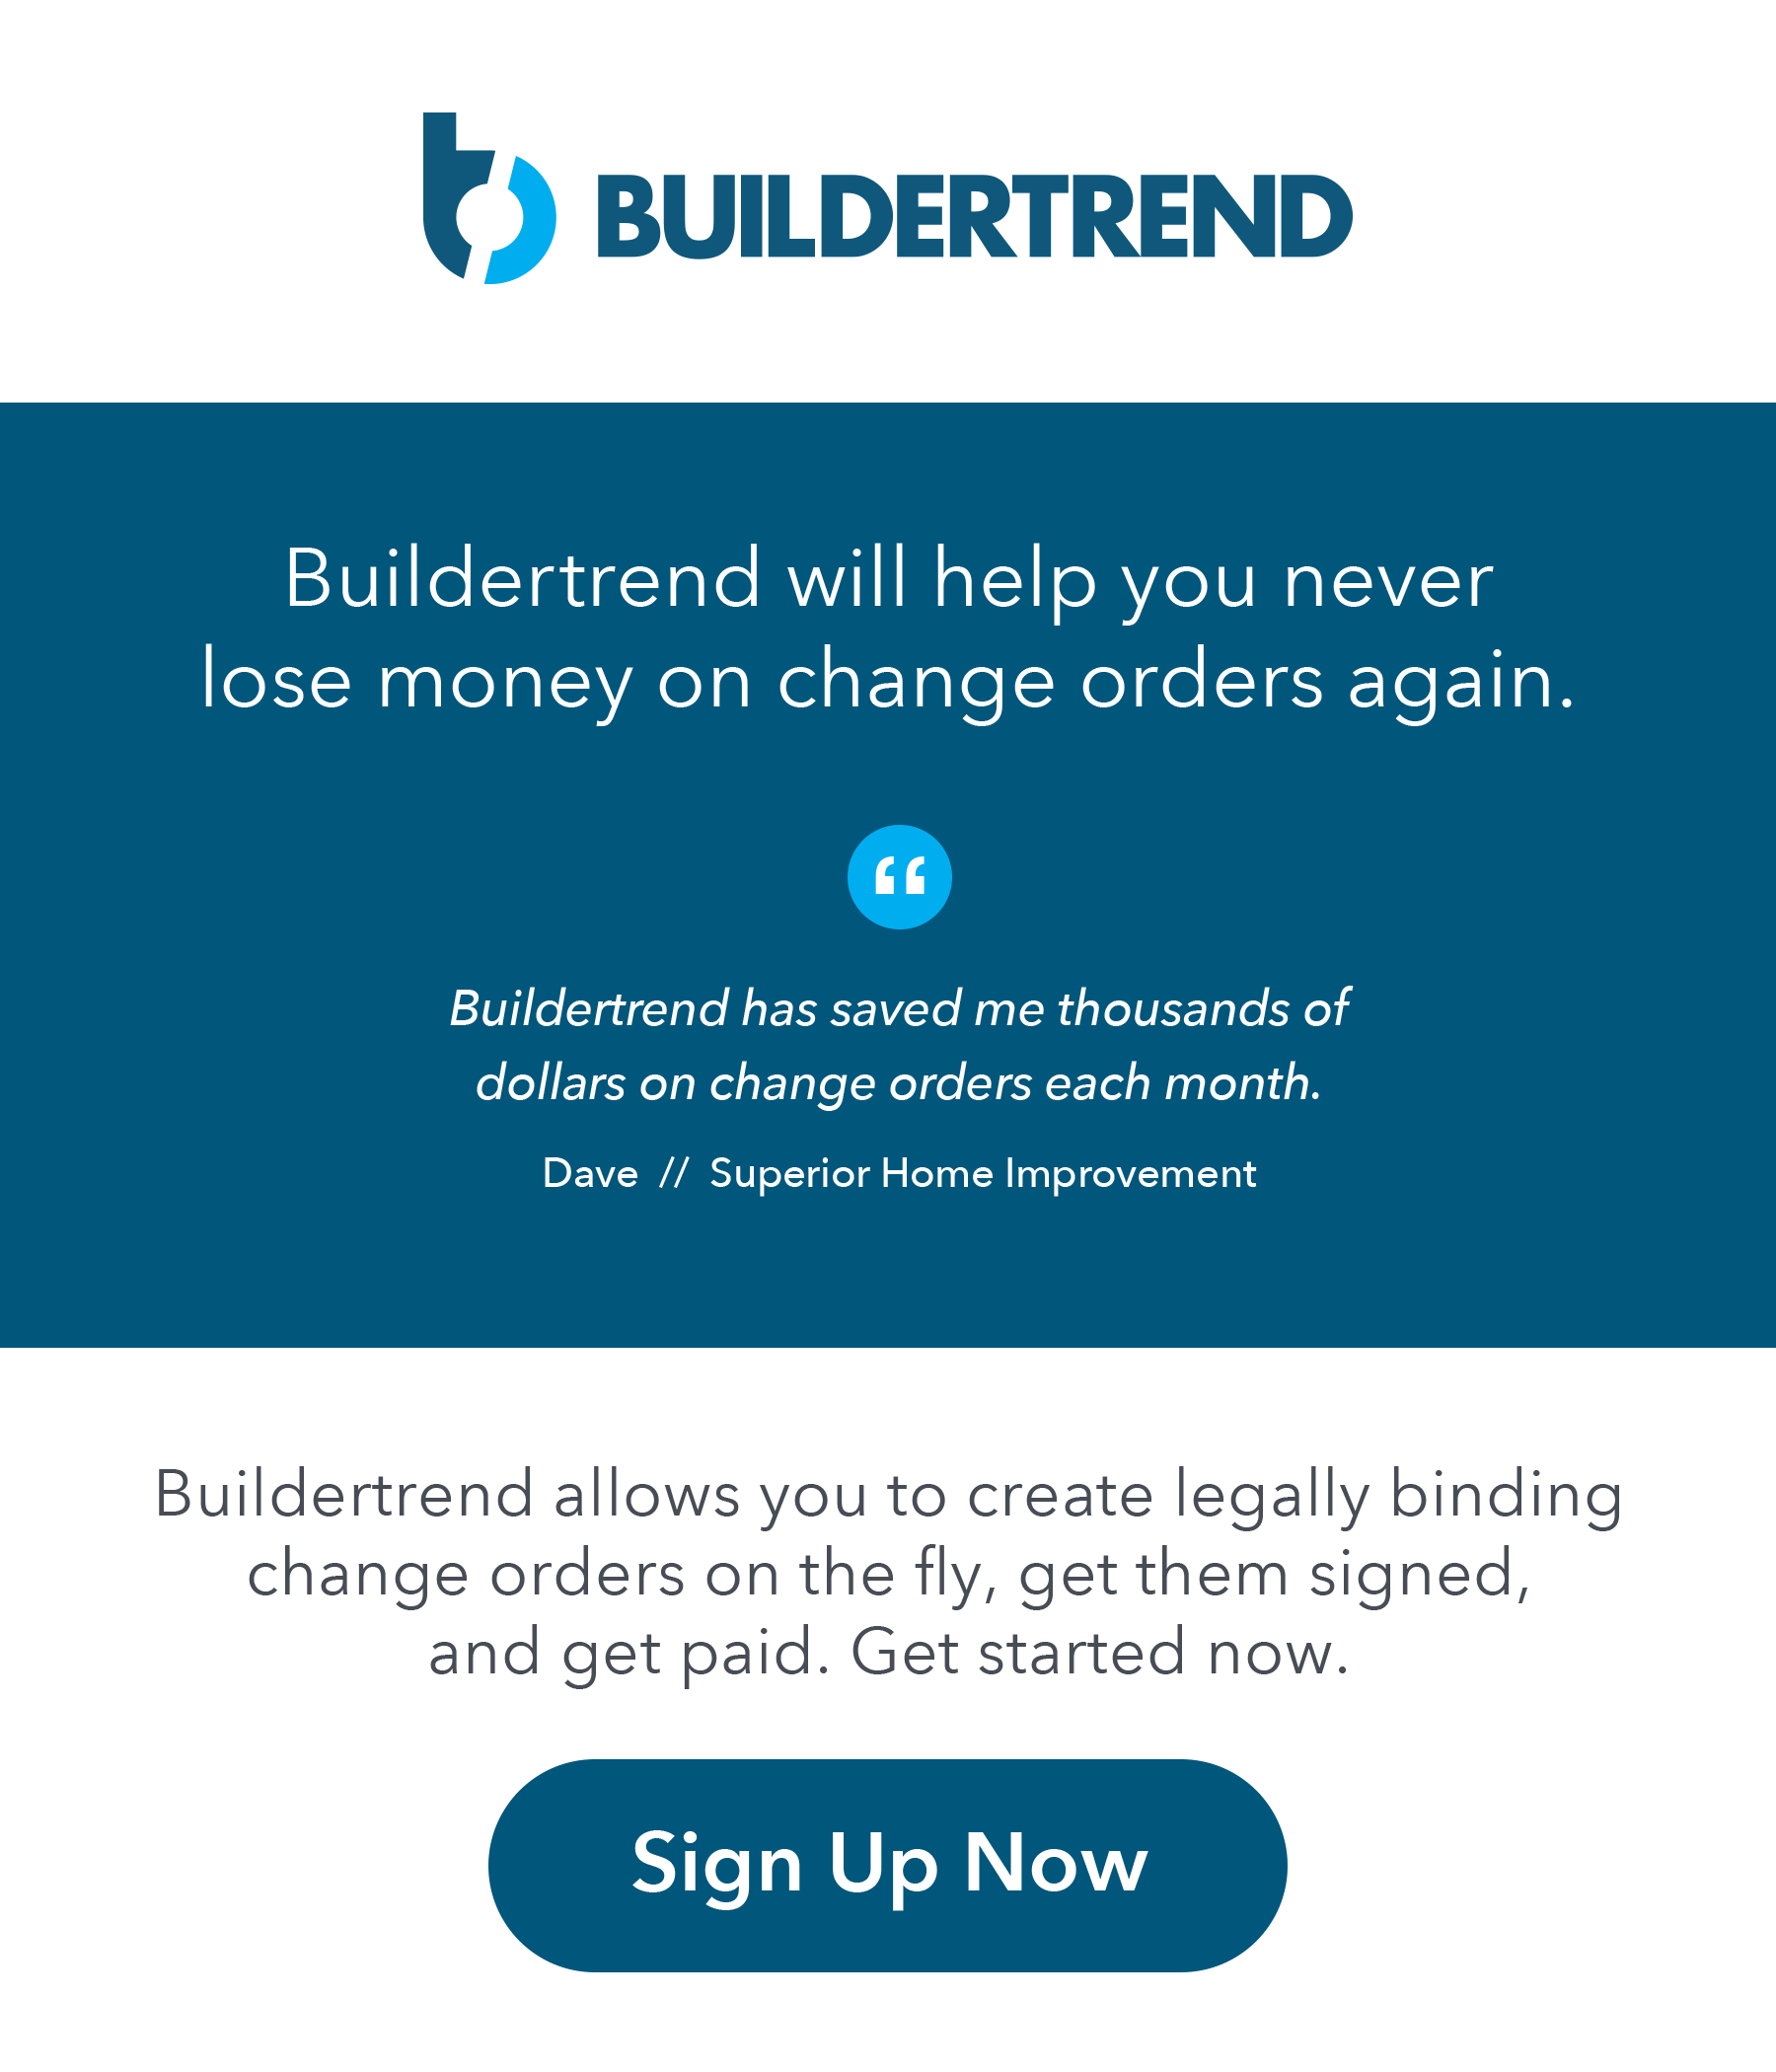 buildertrend will help you never lose money on change orders again - sign up now